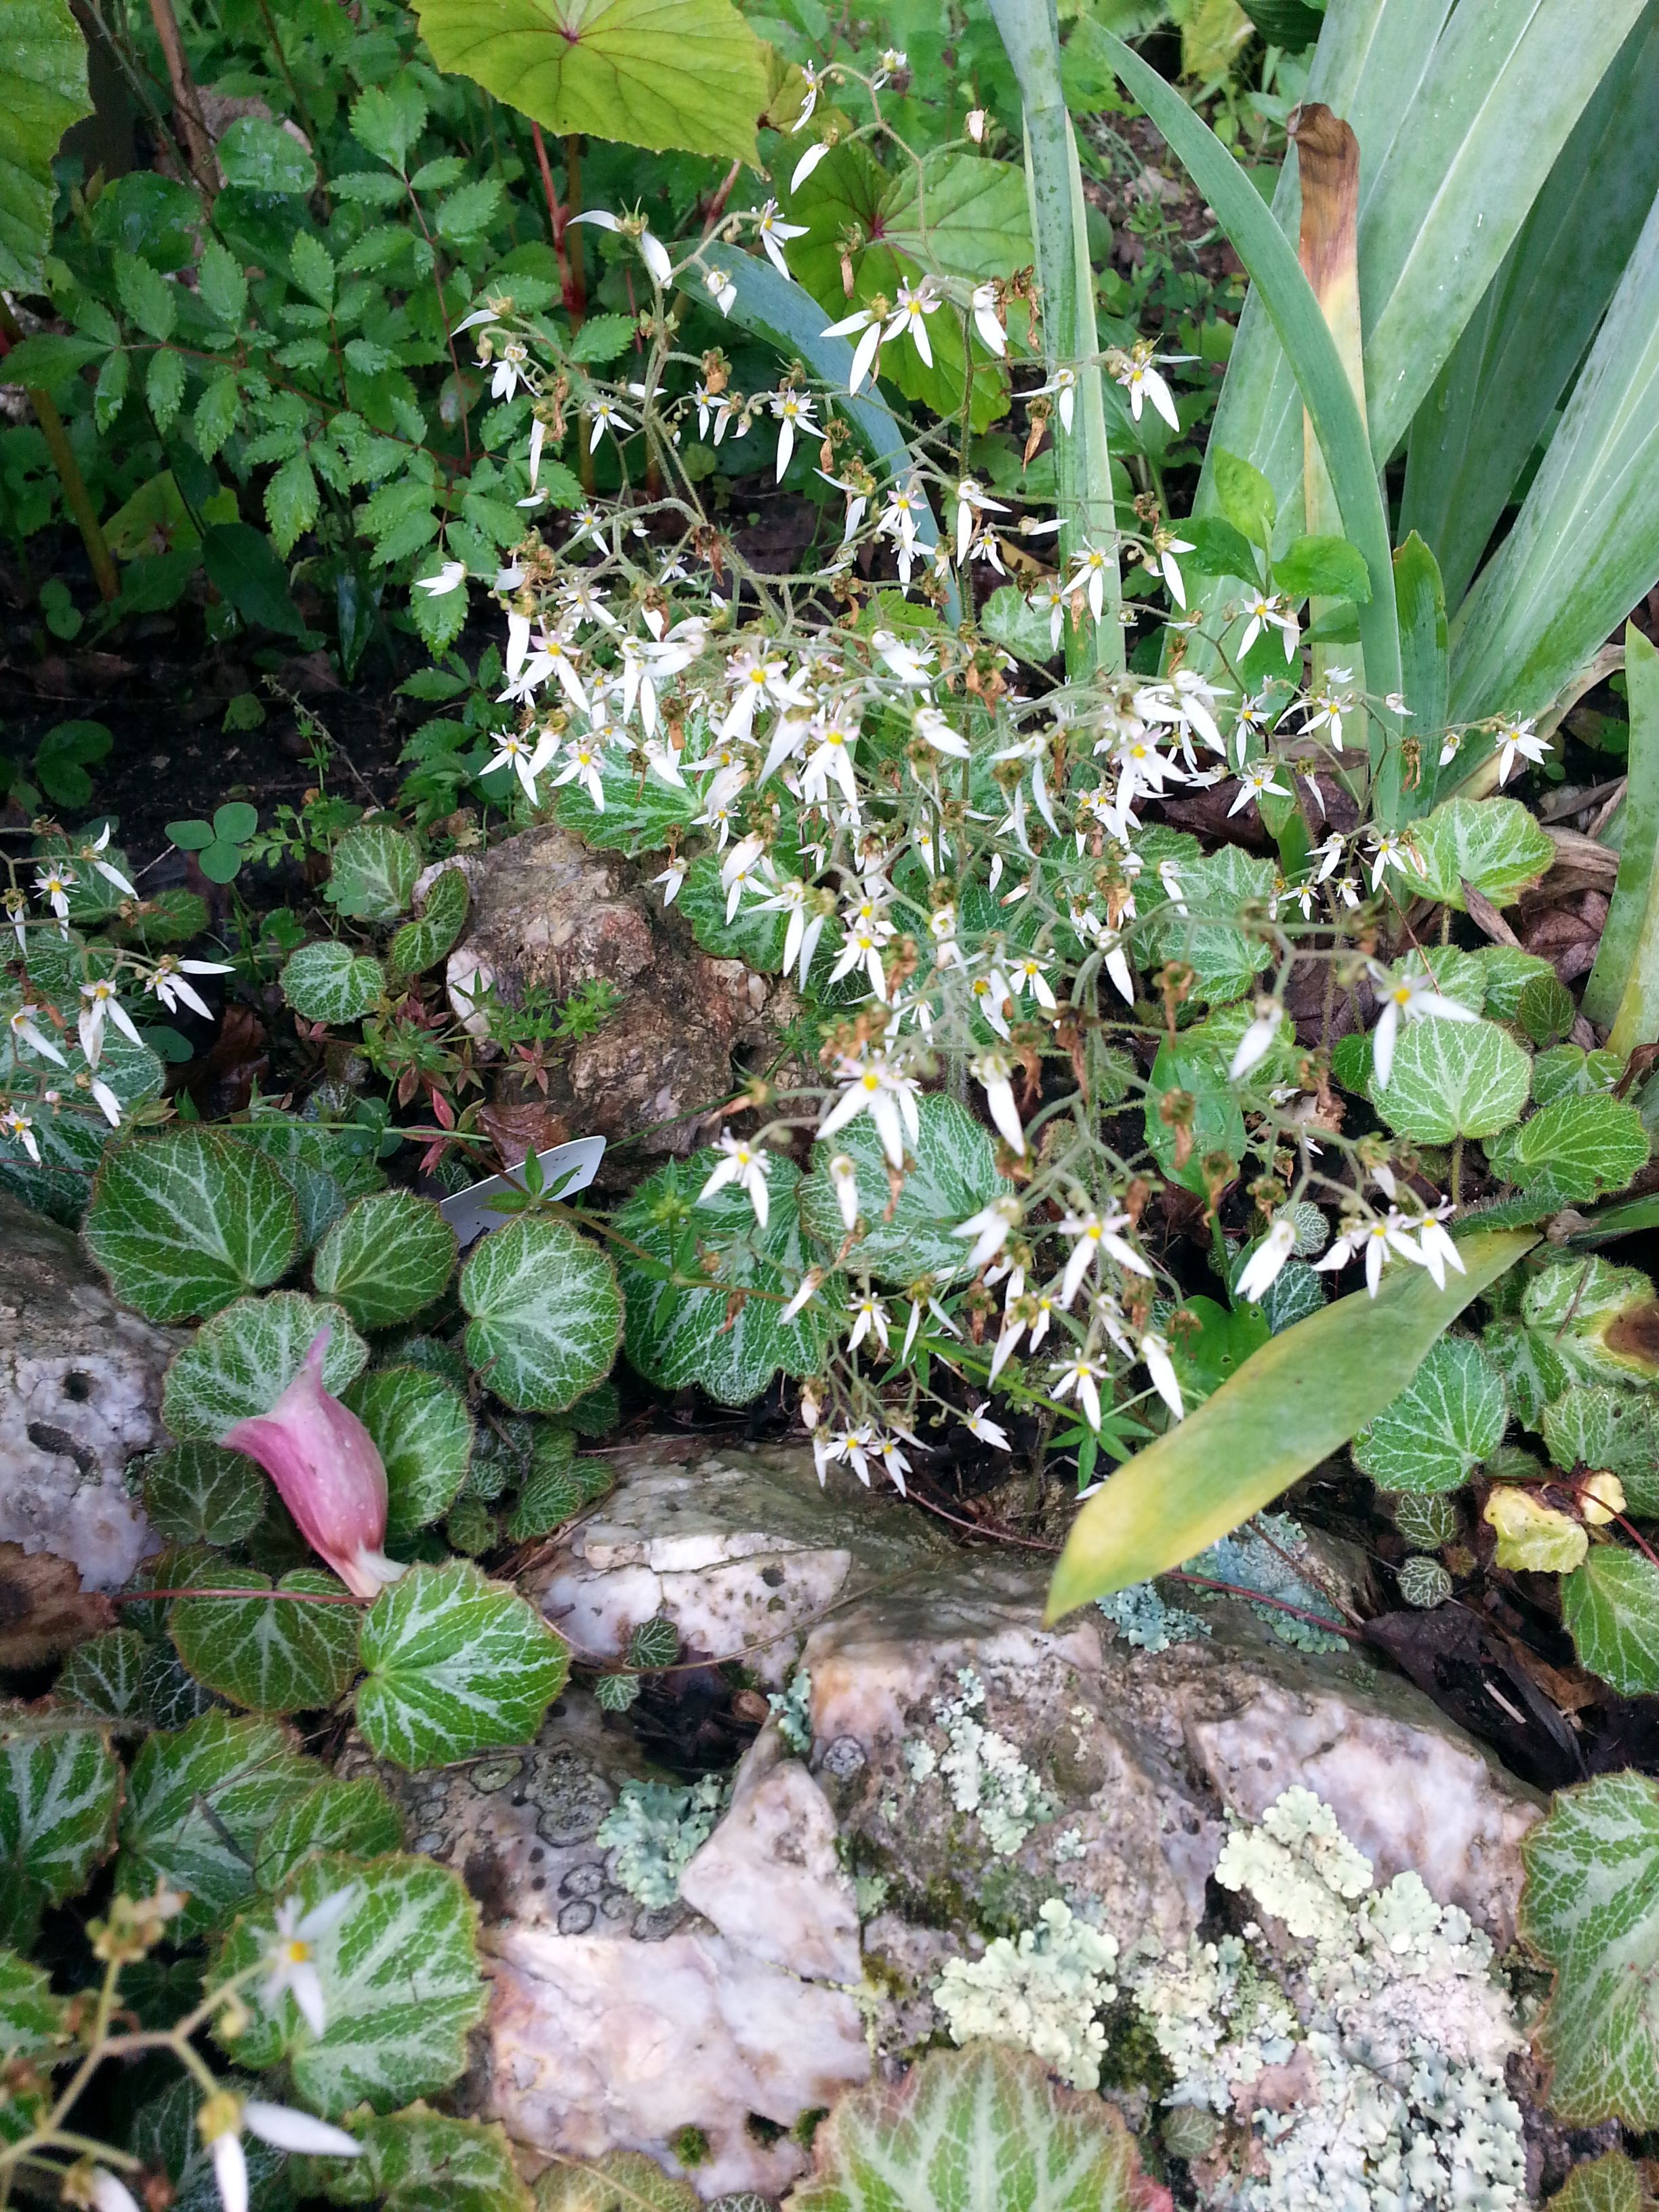 Saxifrage Or Strawberry Begonia Makes An Excellent Ground Cover Or